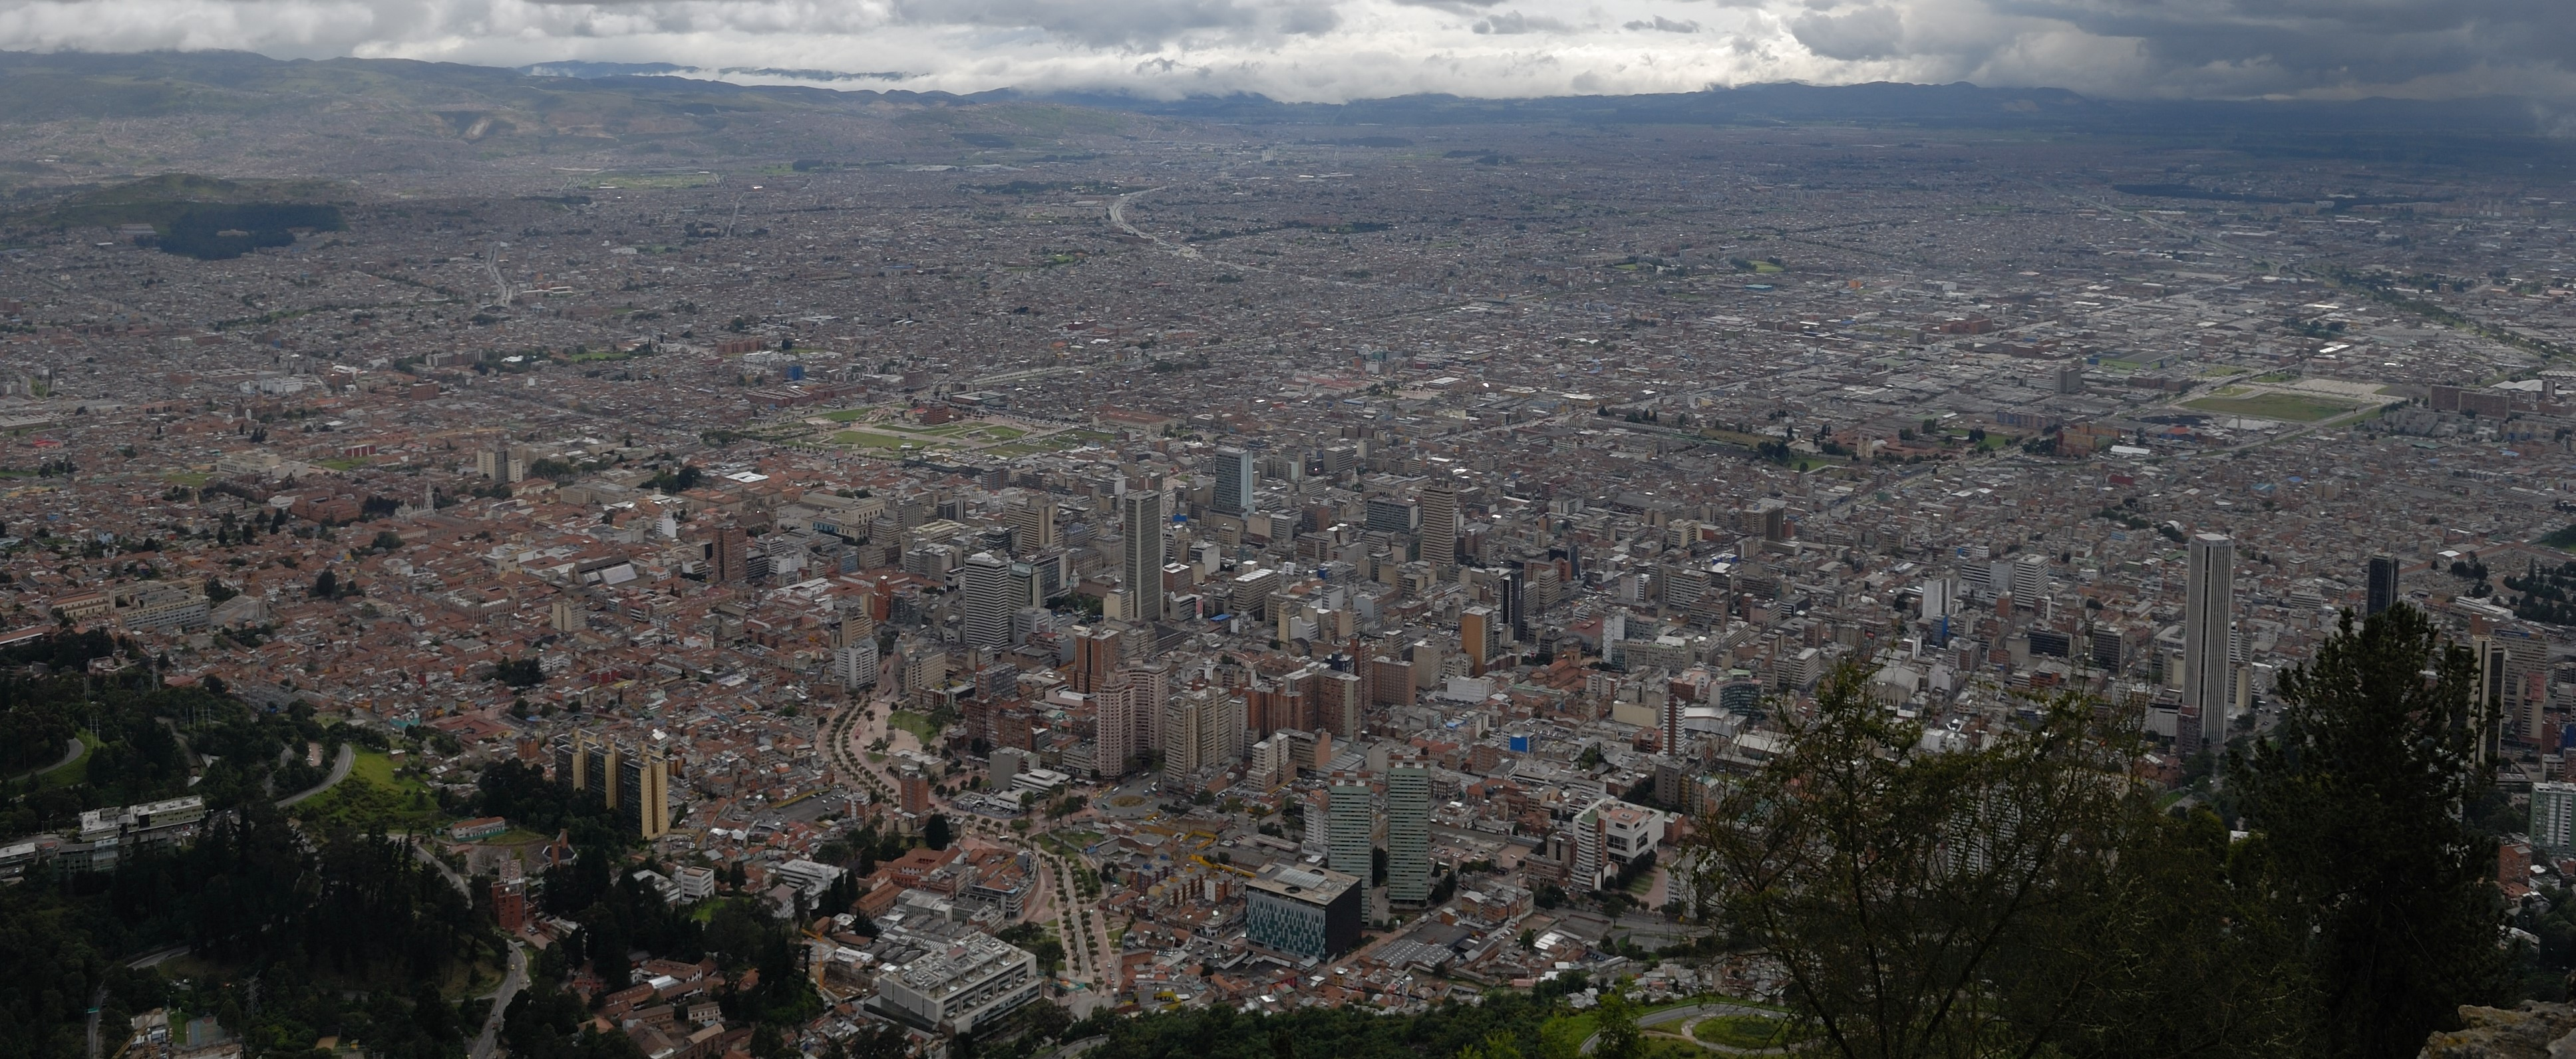 https://www.kontour-travel.com/wp-content/uploads/bogota-monserate.jpg